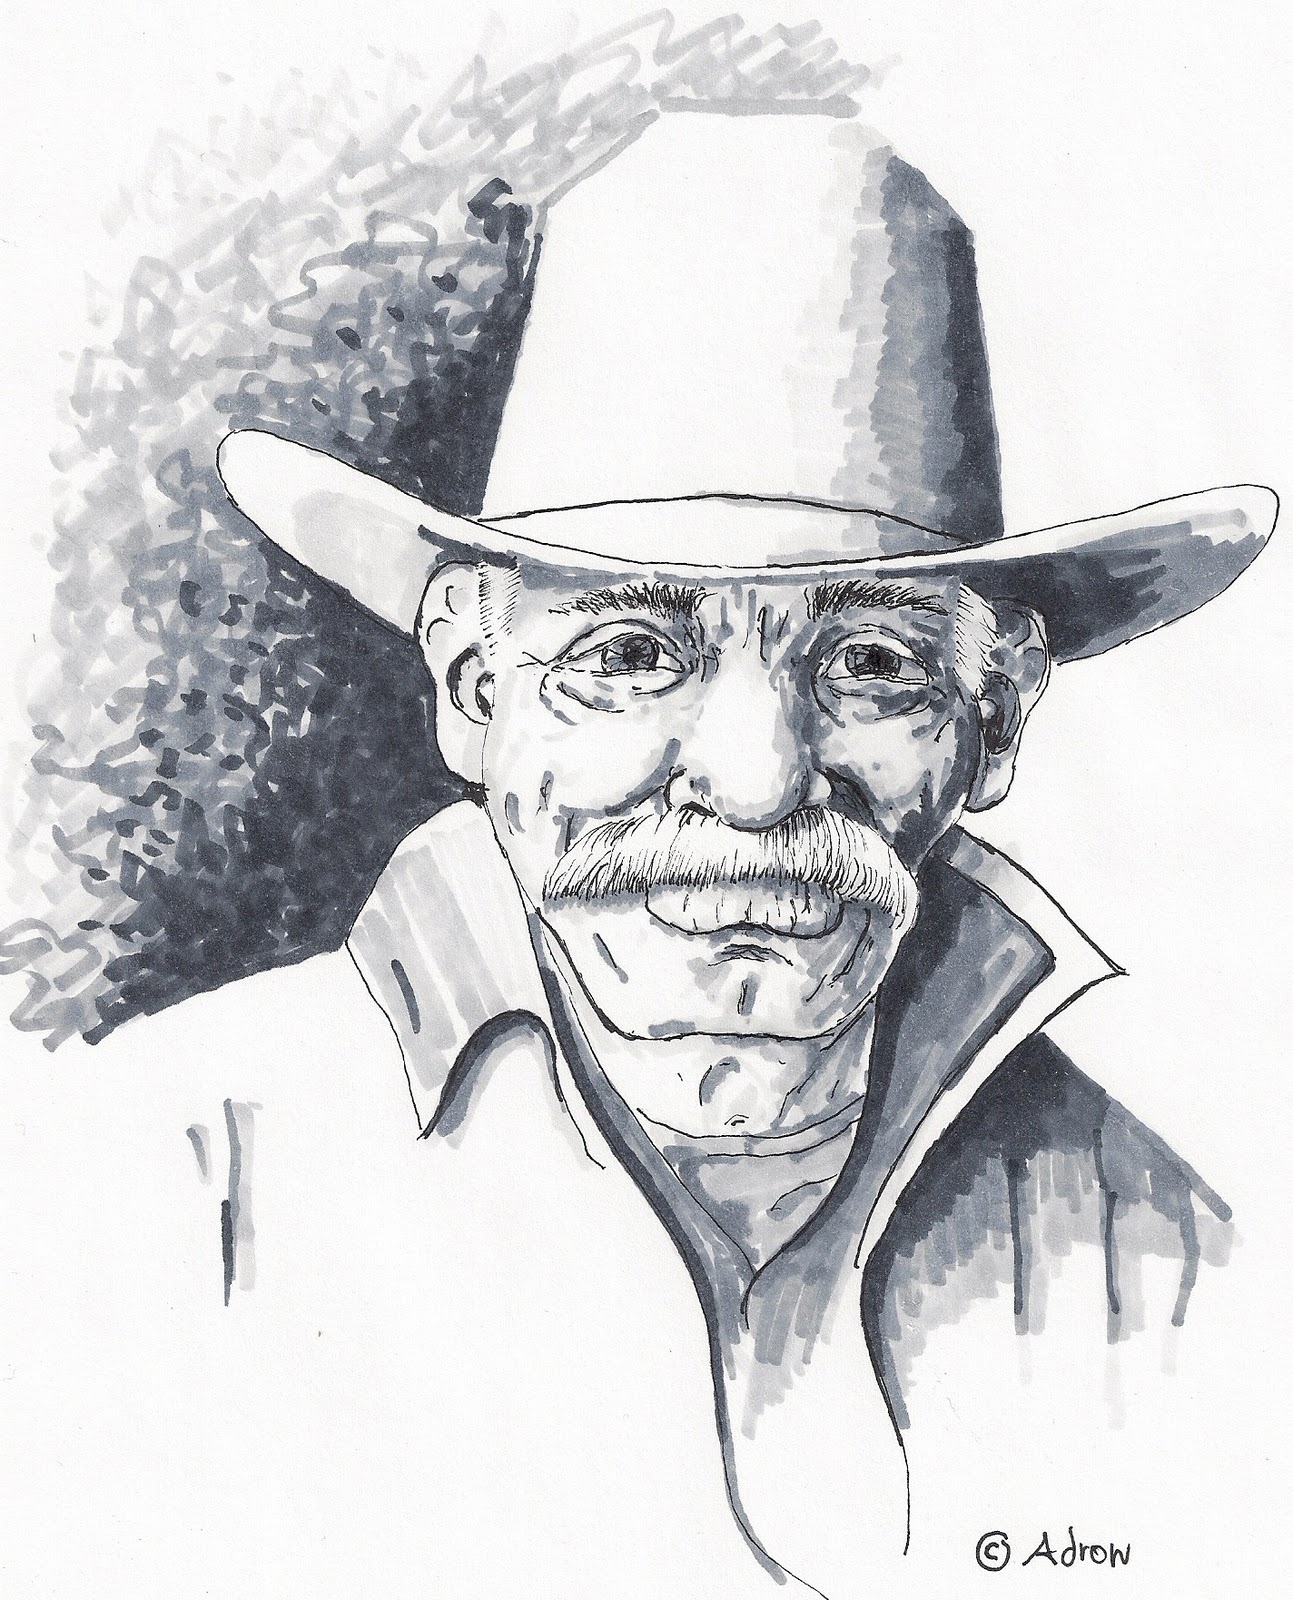 How To Draw Worksheets For The Young Artist How To Draw The Face Of The Old Cowboy